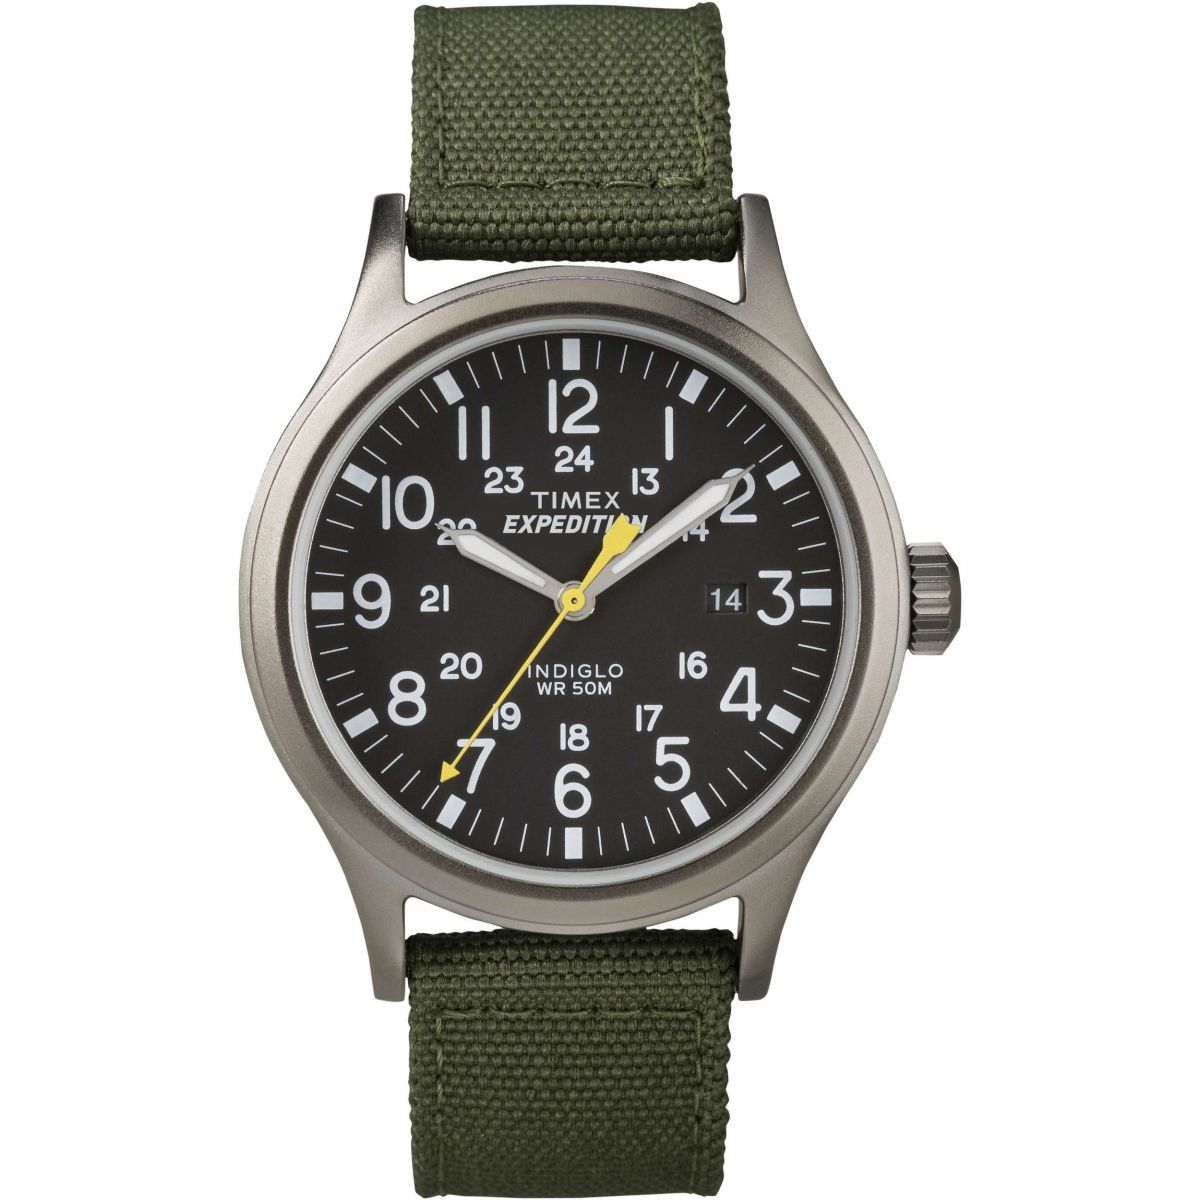 Gents timex expedition watch t49961 for Expedition watches